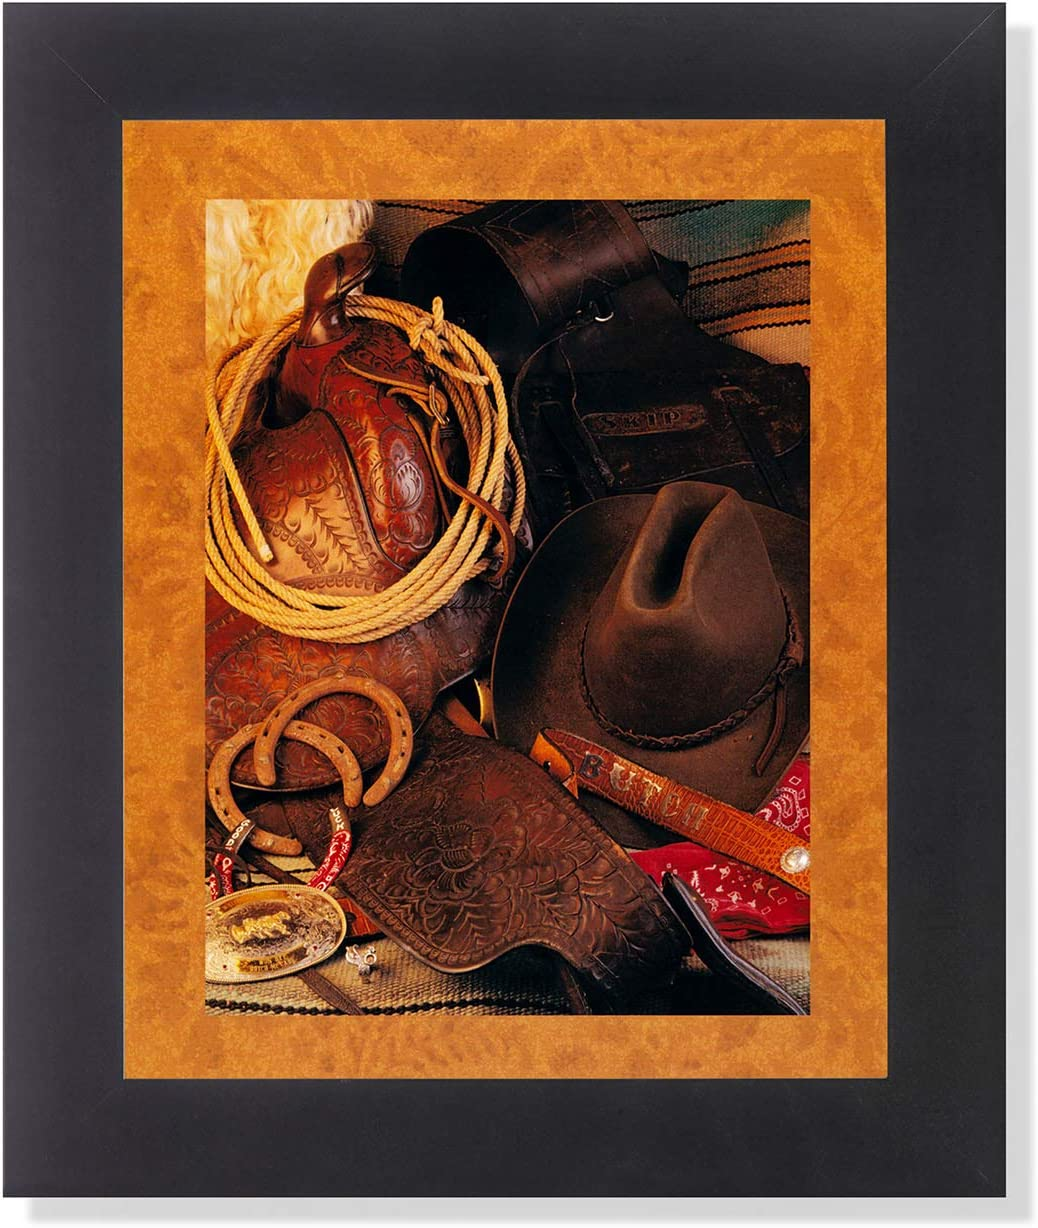 Old West Cowboy Memorabilia Western Rodeo Wall Picture Framed Art Print Old West Decor Posters Prints